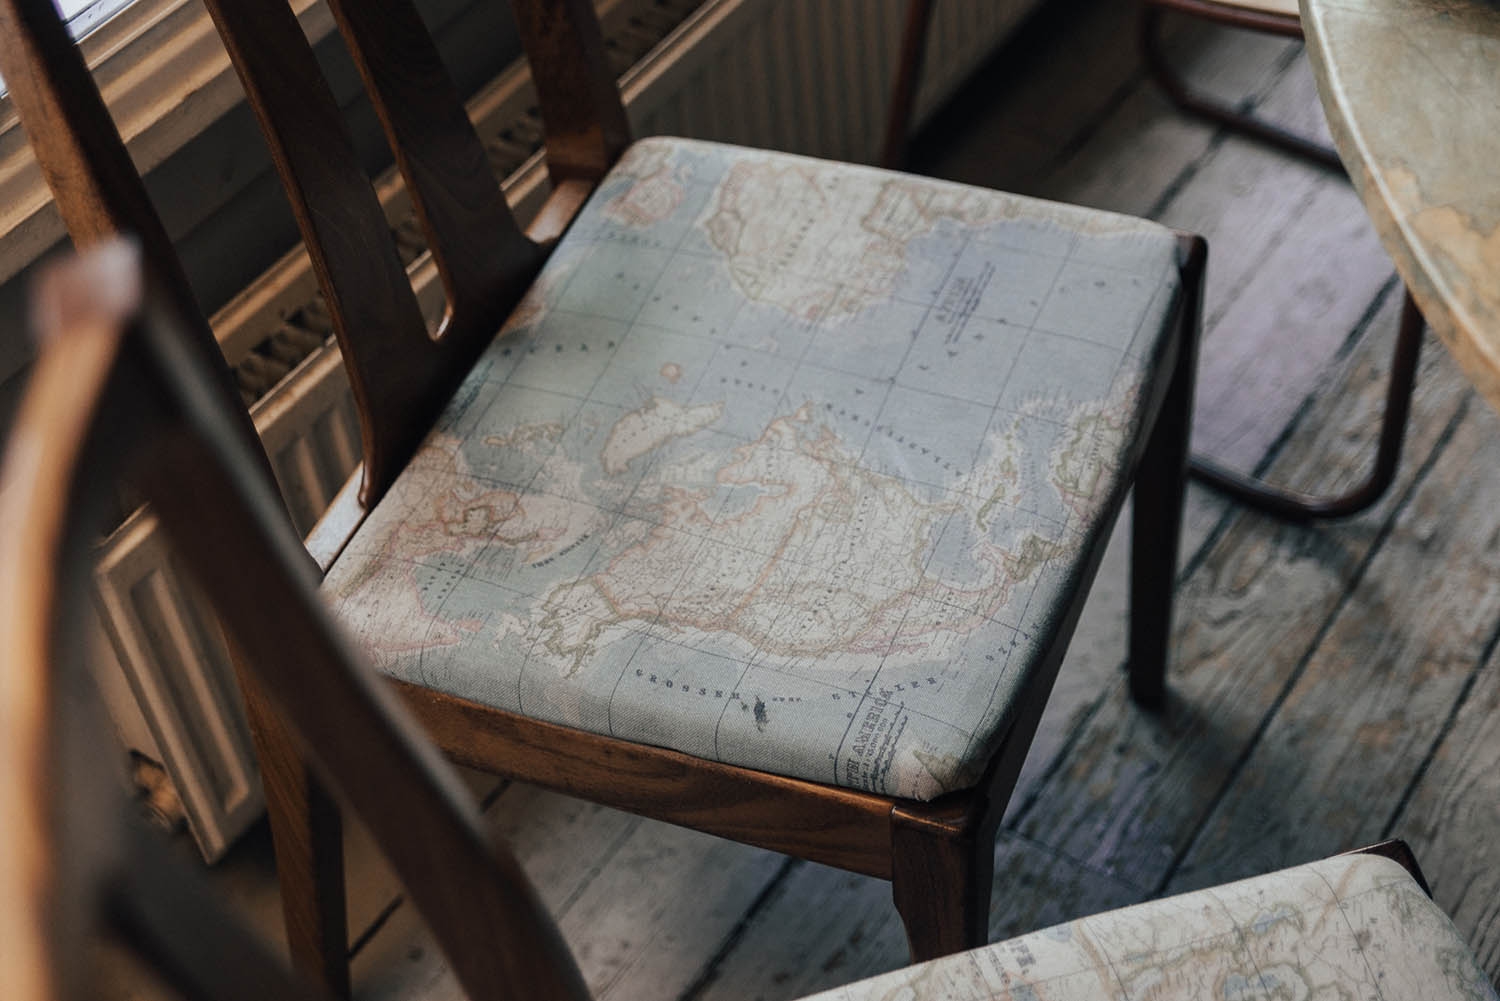 World Map Chairs at Spoon Cafe in Edinburgh